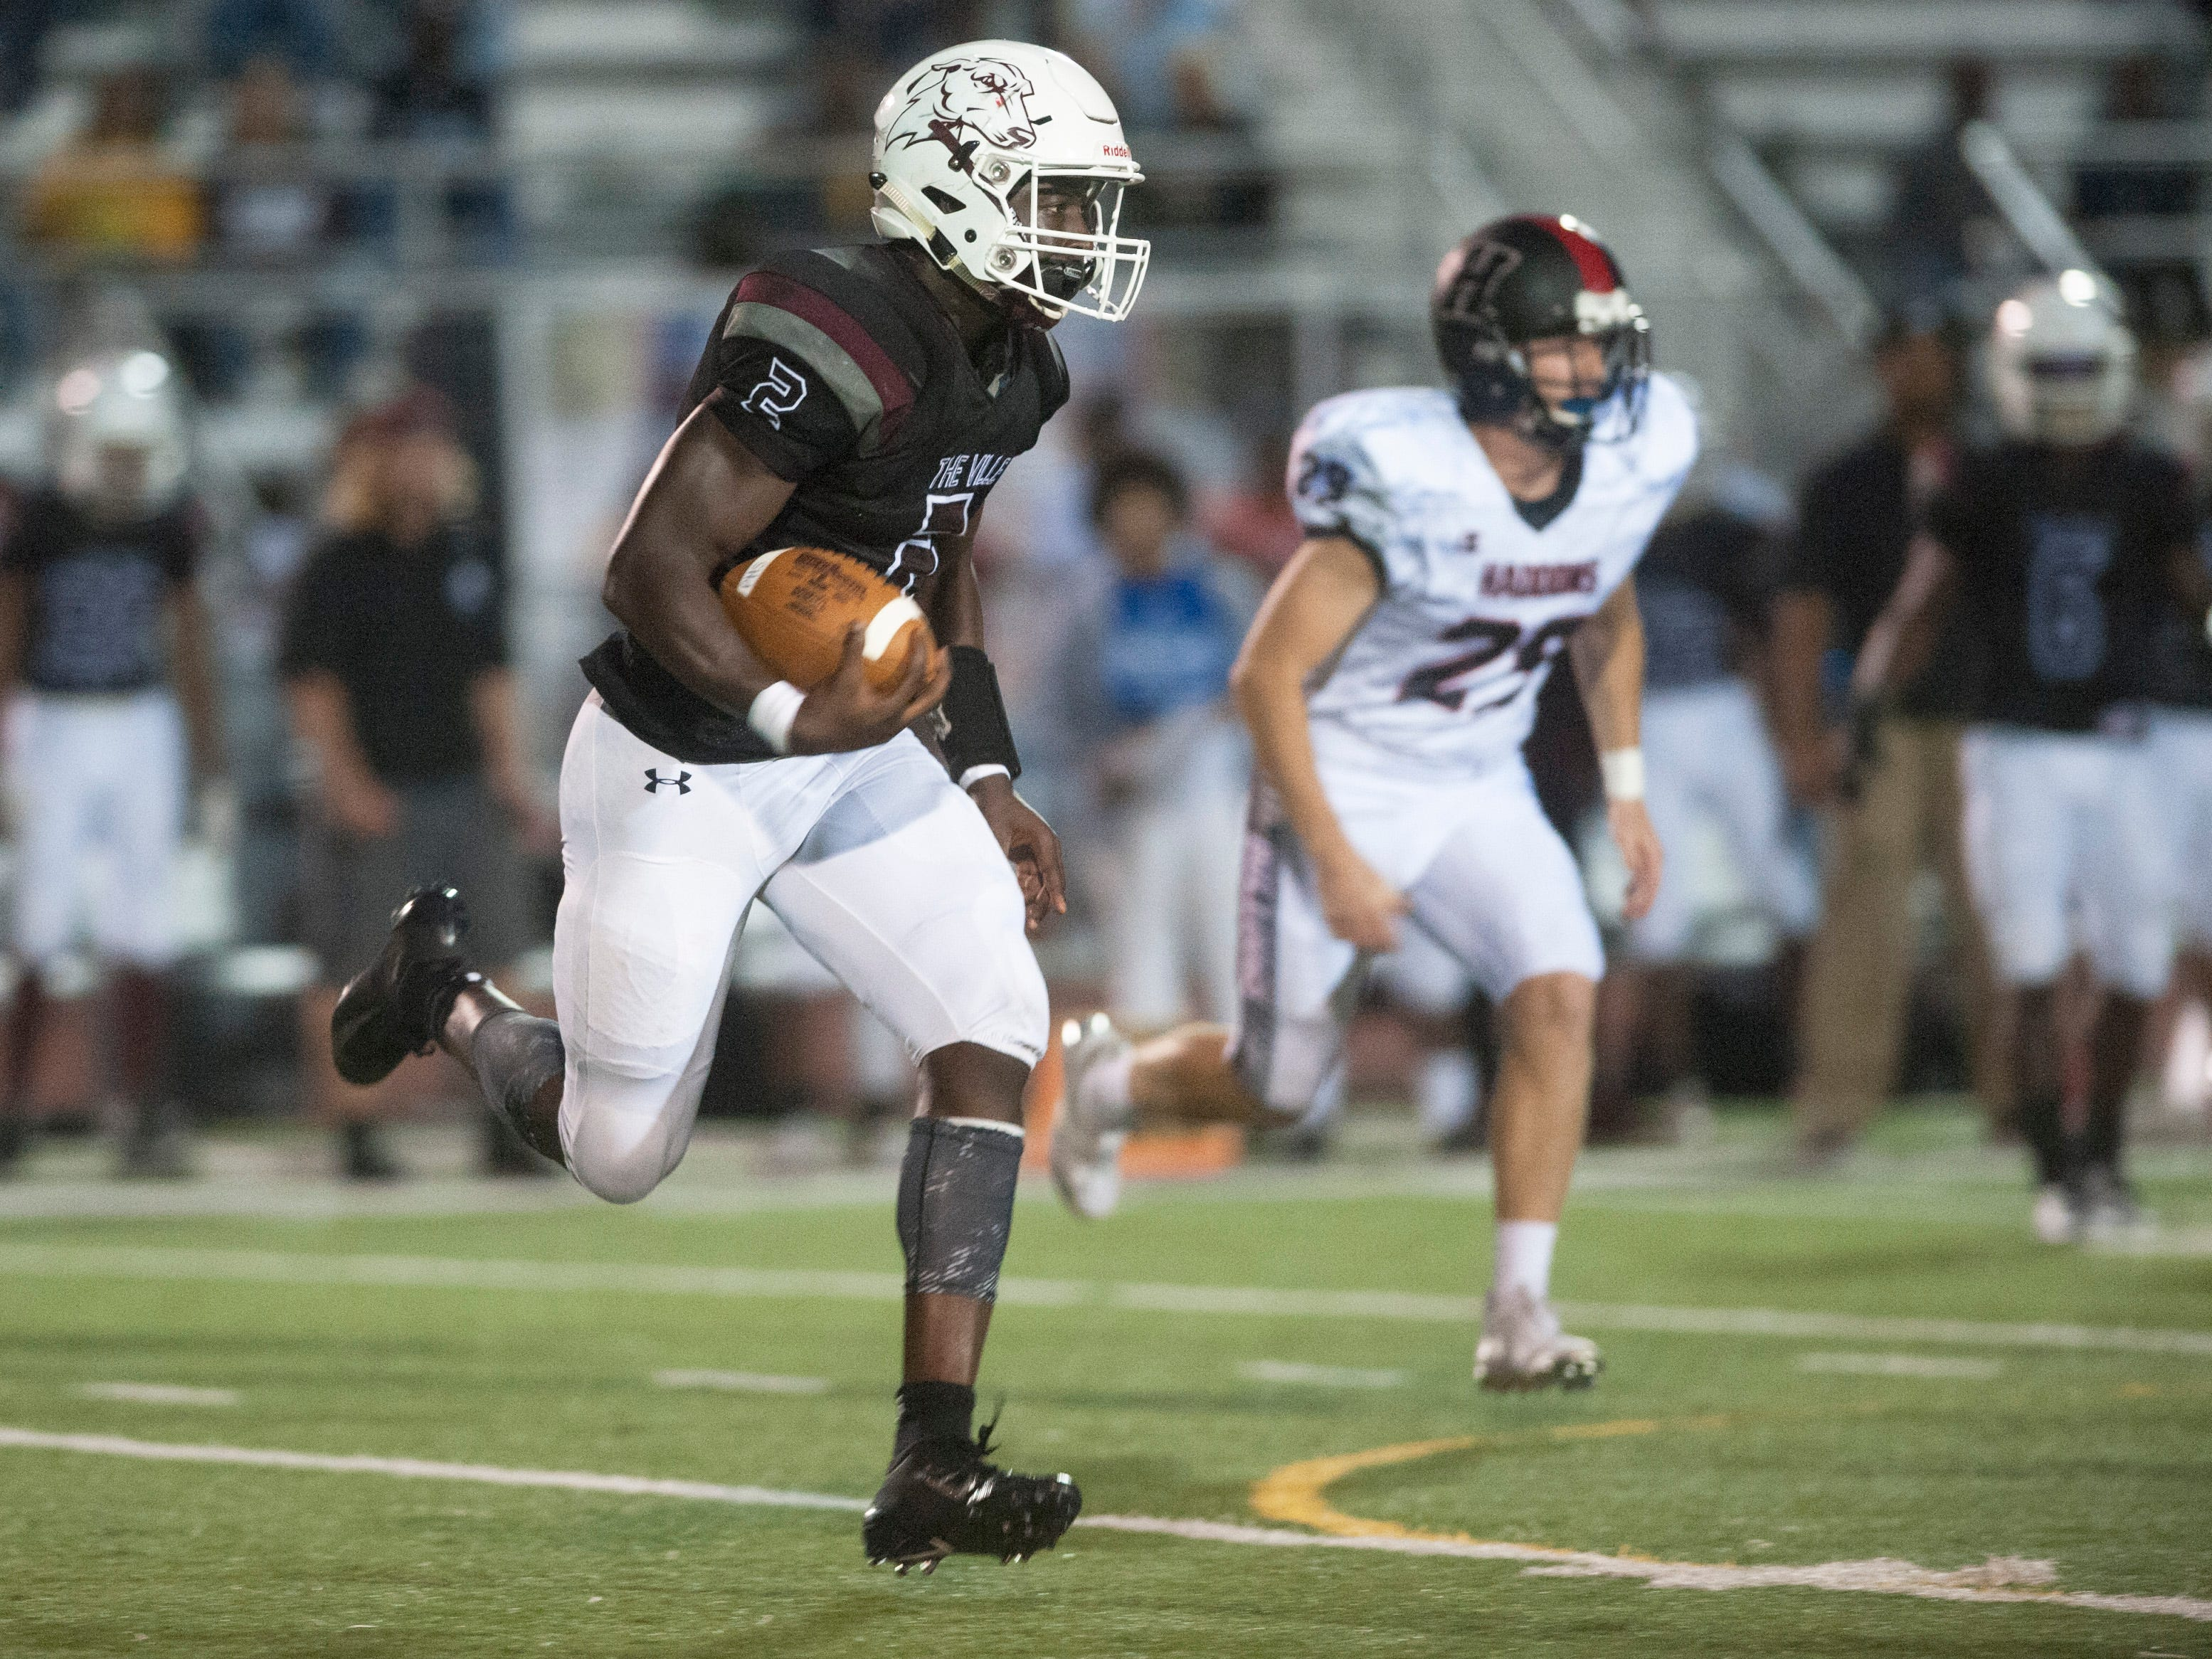 Pleasantville's Mohamed Toure runs the ball during the 2nd quarter of Friday night's football game between Haddonfield and Pleasantville, played at Pleasantville High School on August 31, 2018.